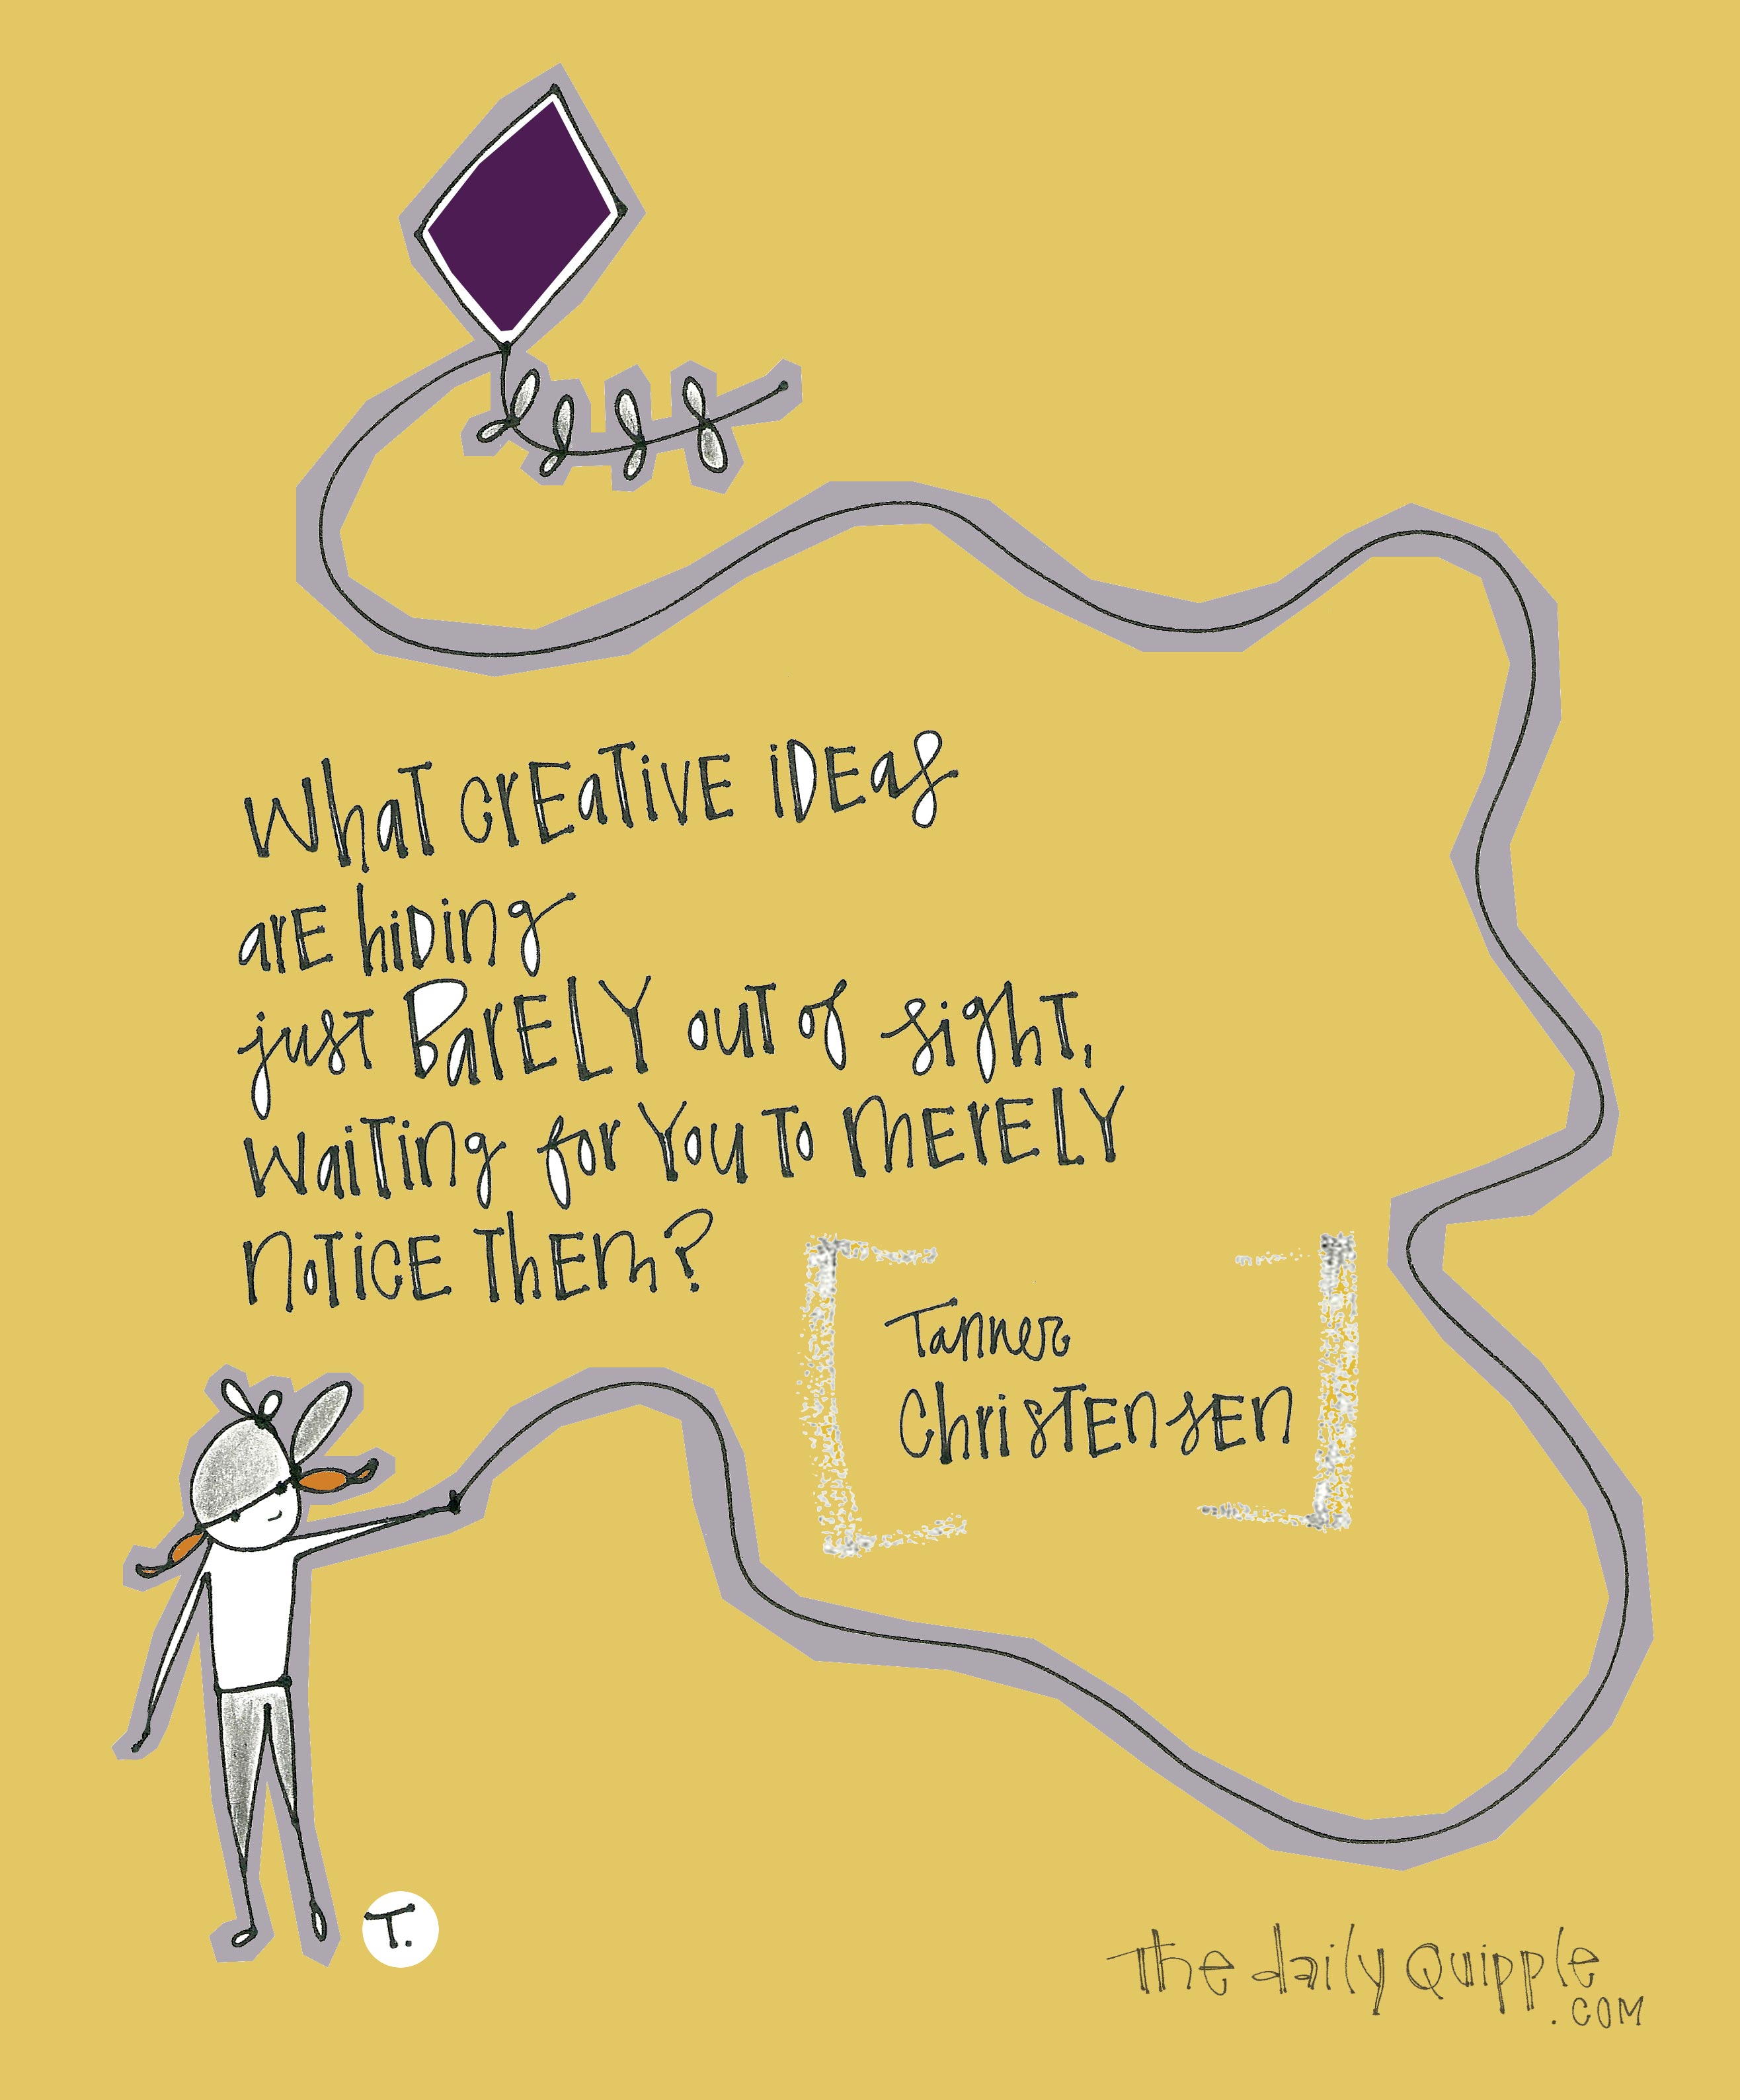 What creative ideas are hiding just barely out of sight, waiting for you to merely notice them? [Tanner Christensen]